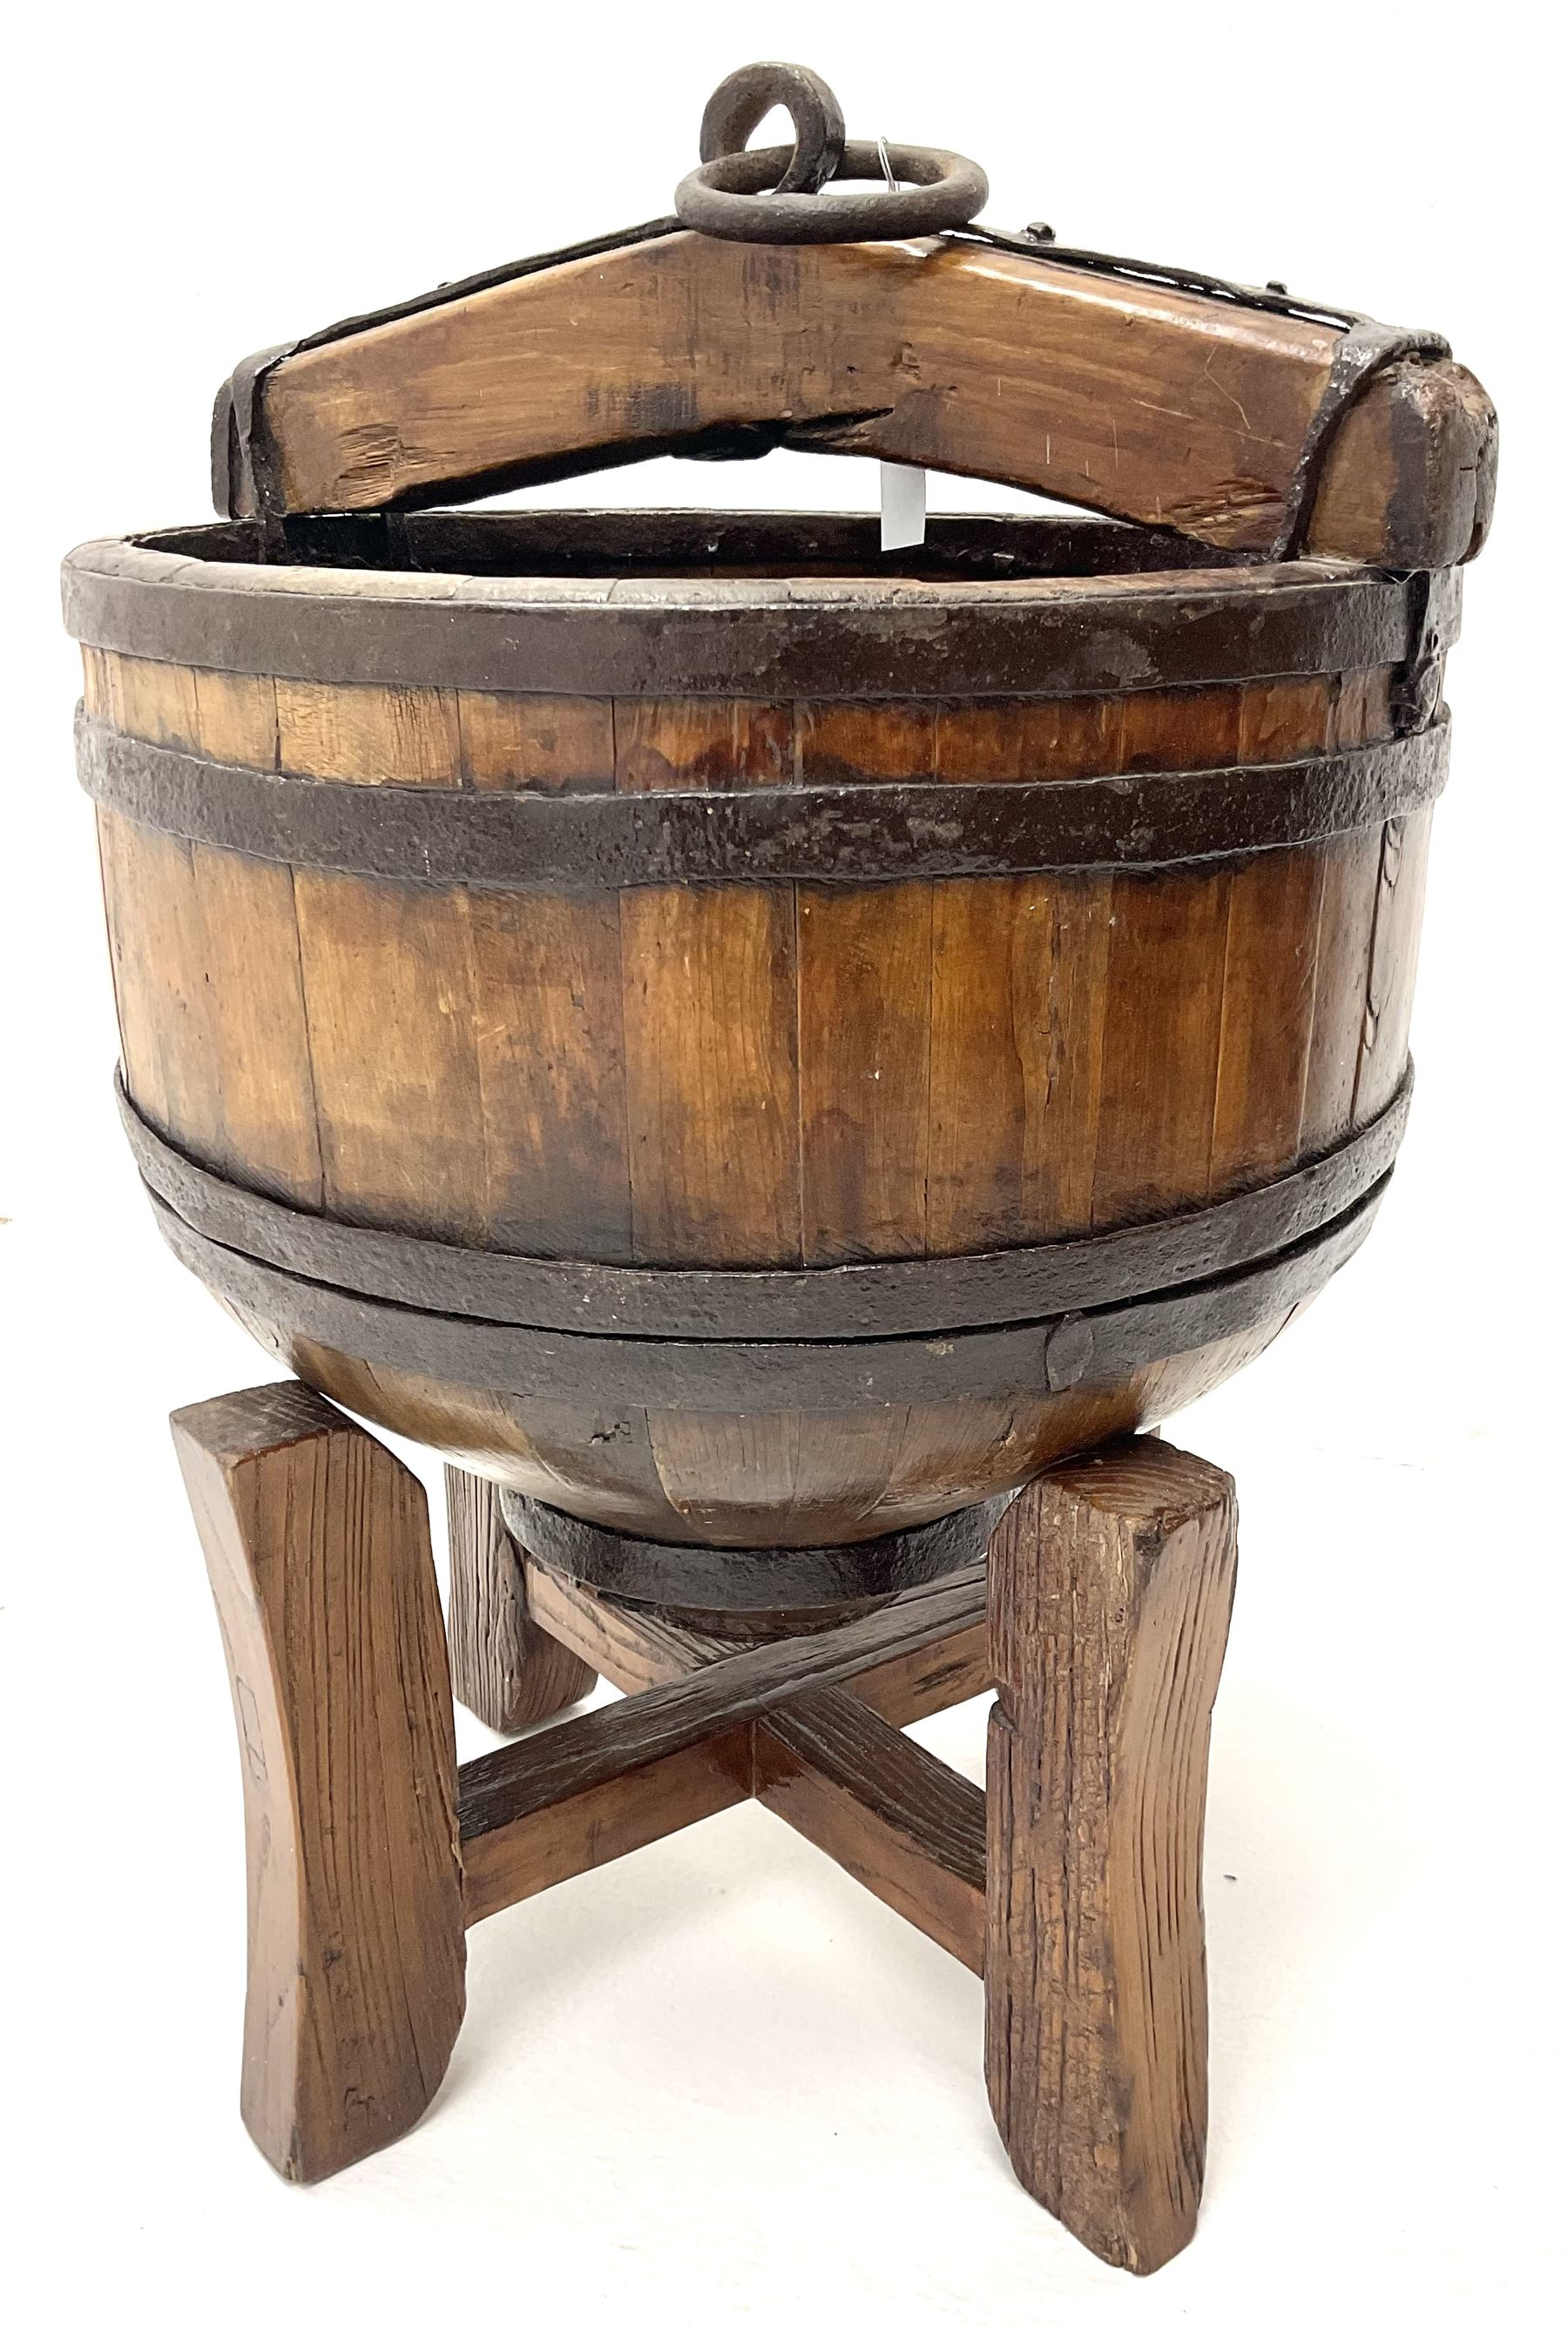 18th century continental hardwood coopered well bucket on stand